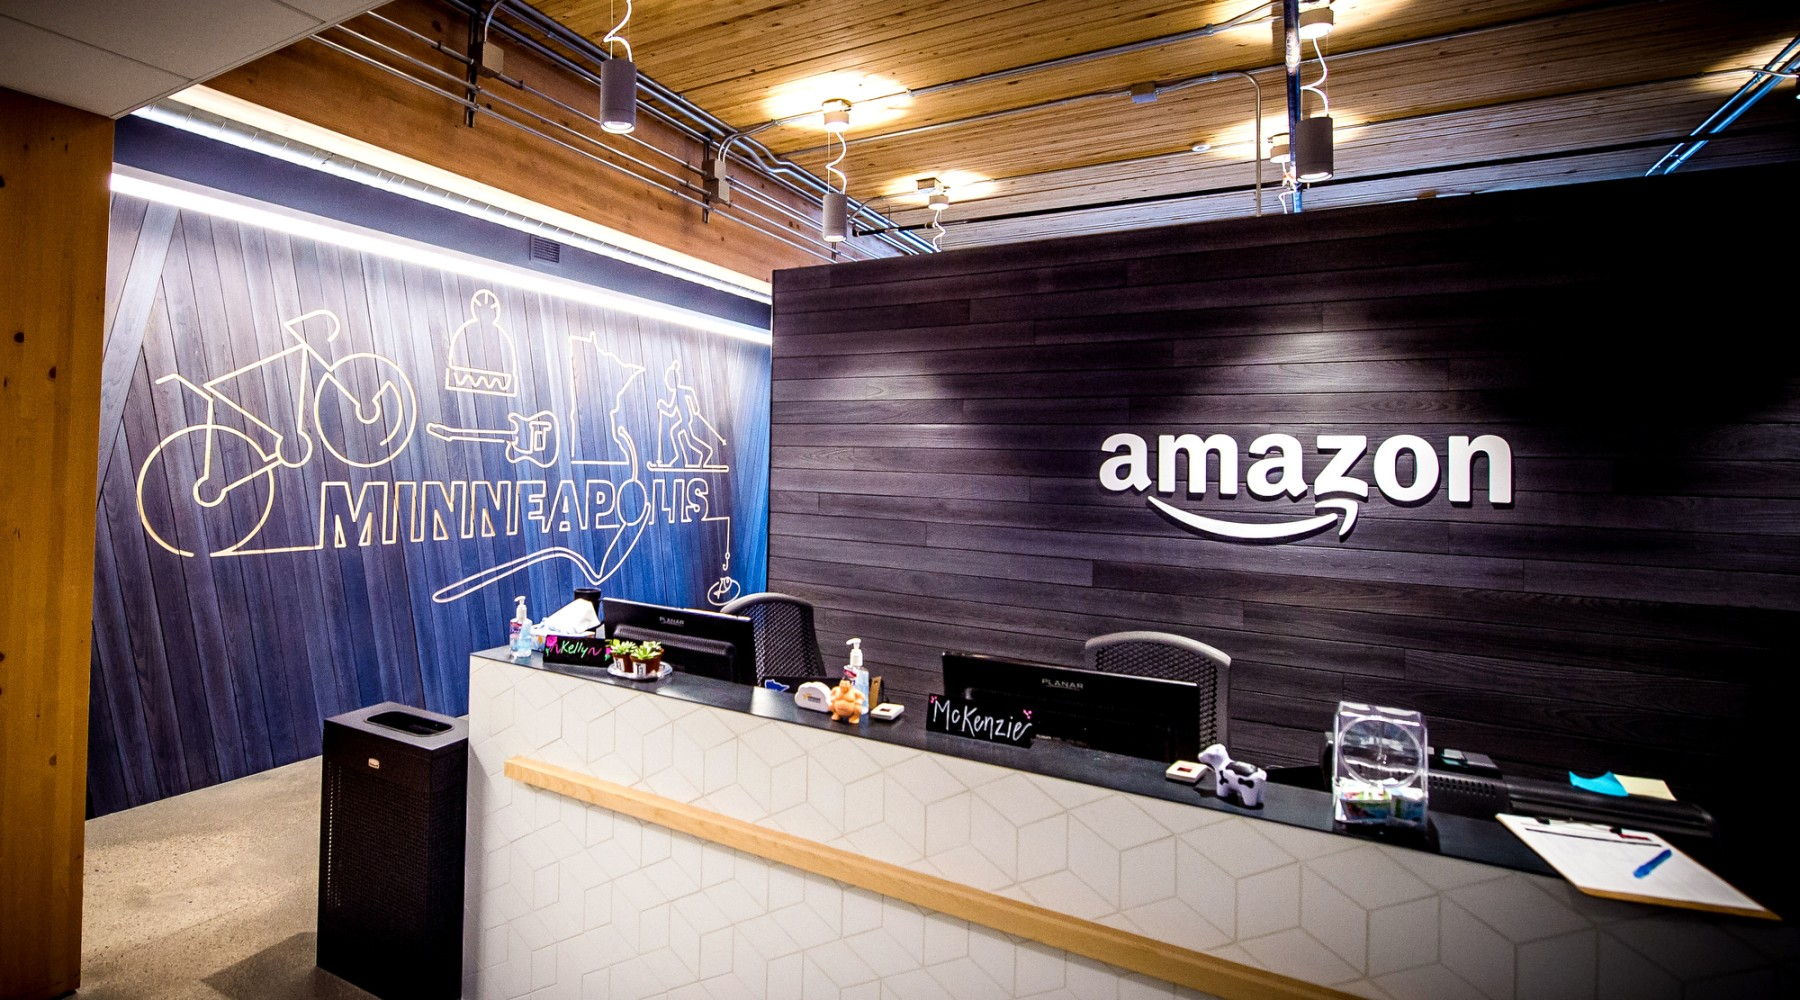 Amazon office in Minneapolis, via blog.aboutamazon.com